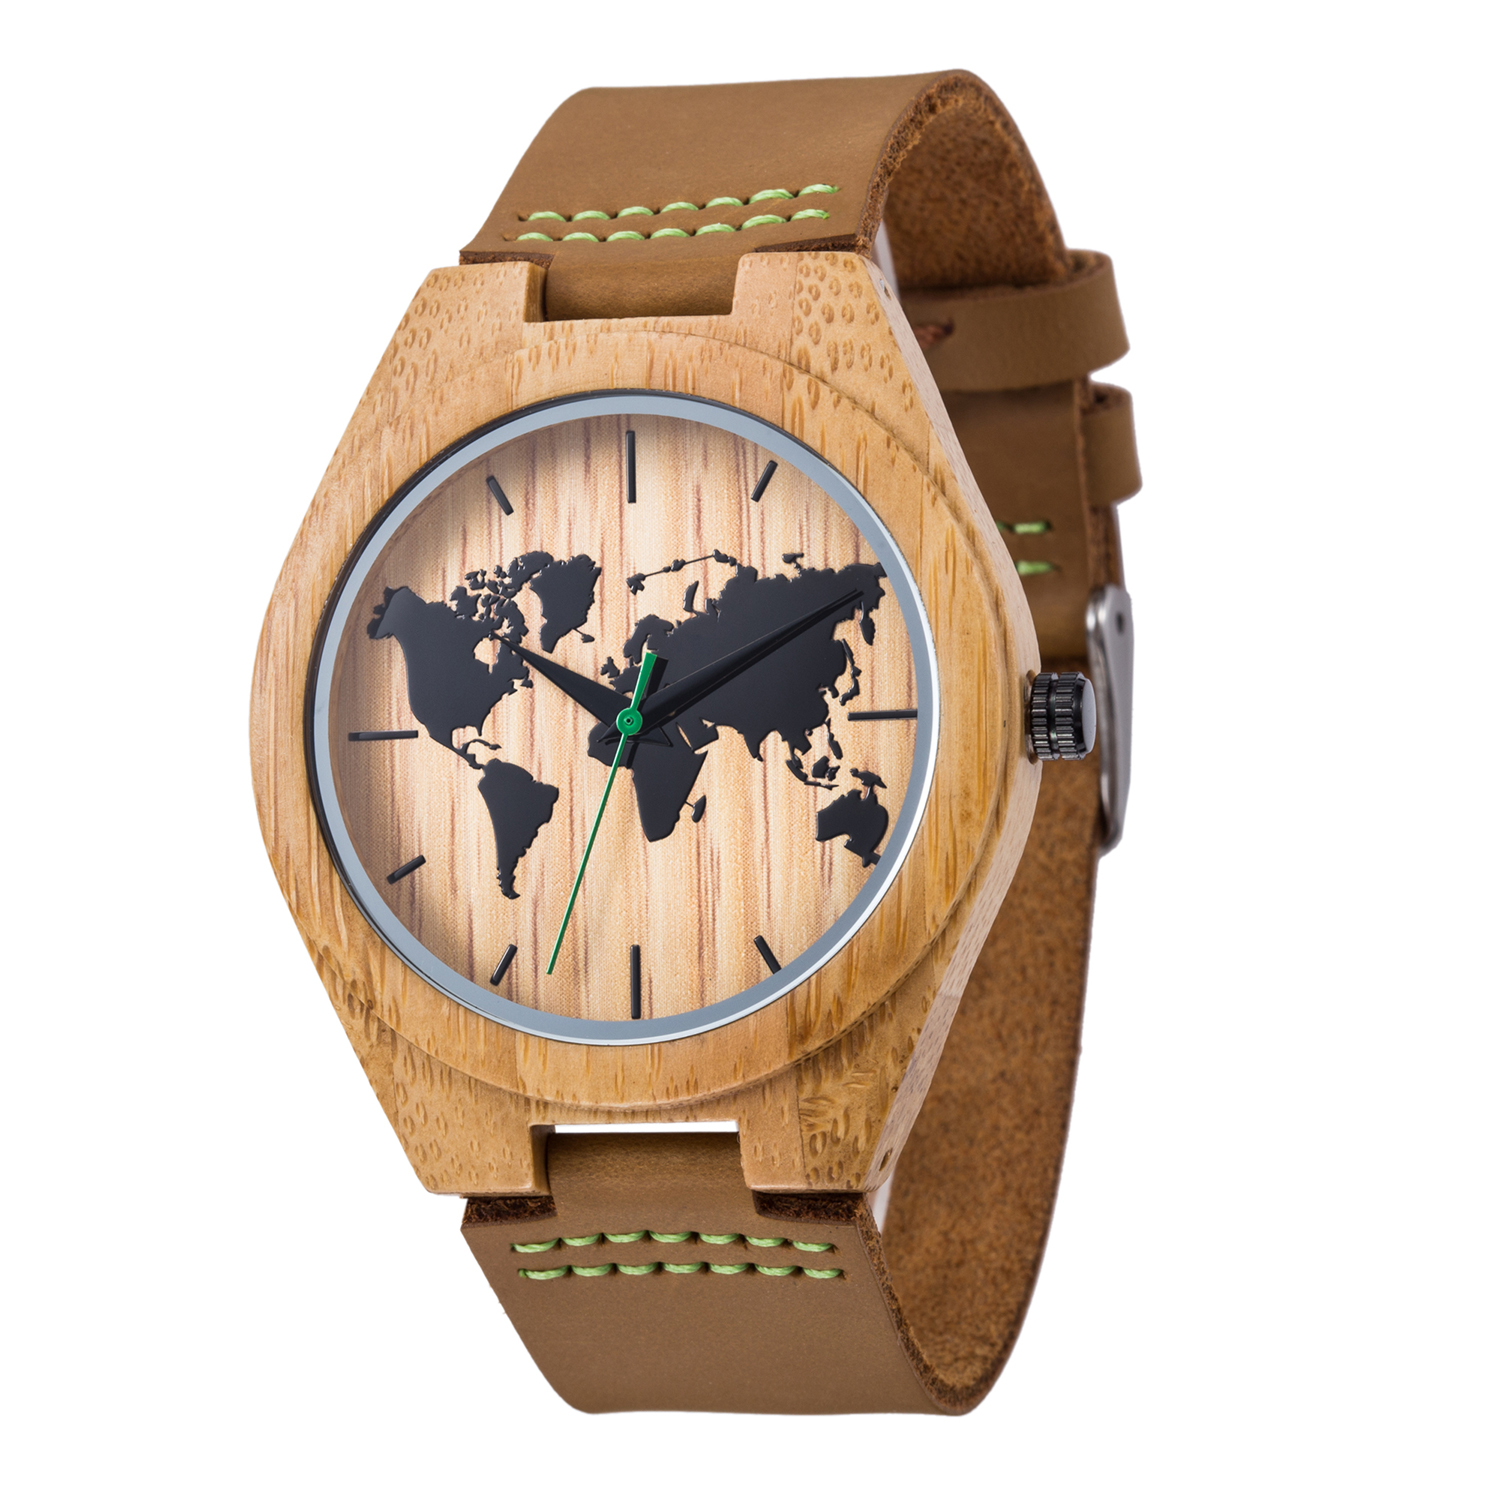 New World Map Mens Genuine Leather Quartz Watch Wood Bamboo Male Wrist Watch Luxury Brand Reloj de Madera Genuine with Gift Box fashion top gift item wood watches men s analog simple hand made wrist watch male sports quartz watch reloj de madera